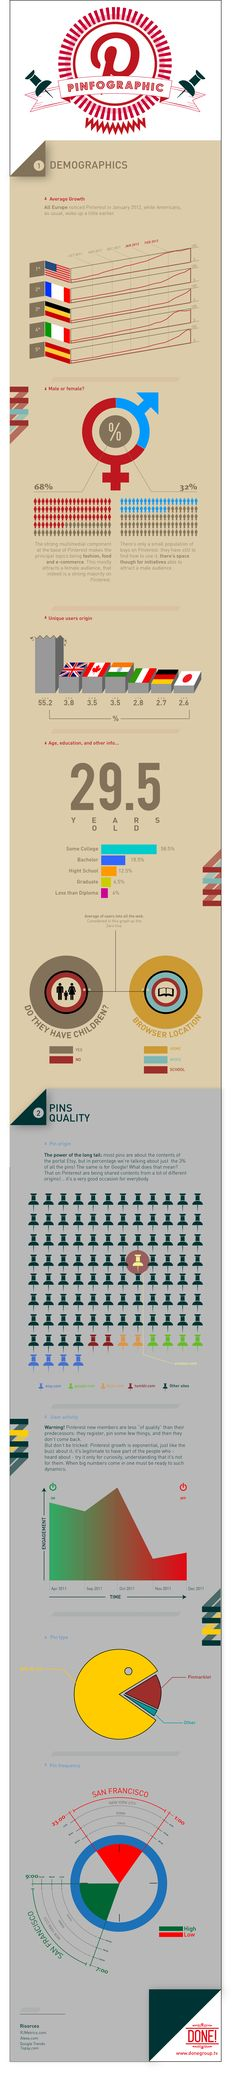 Pinterest Demographics #infographic (repinned by @ricardollera)